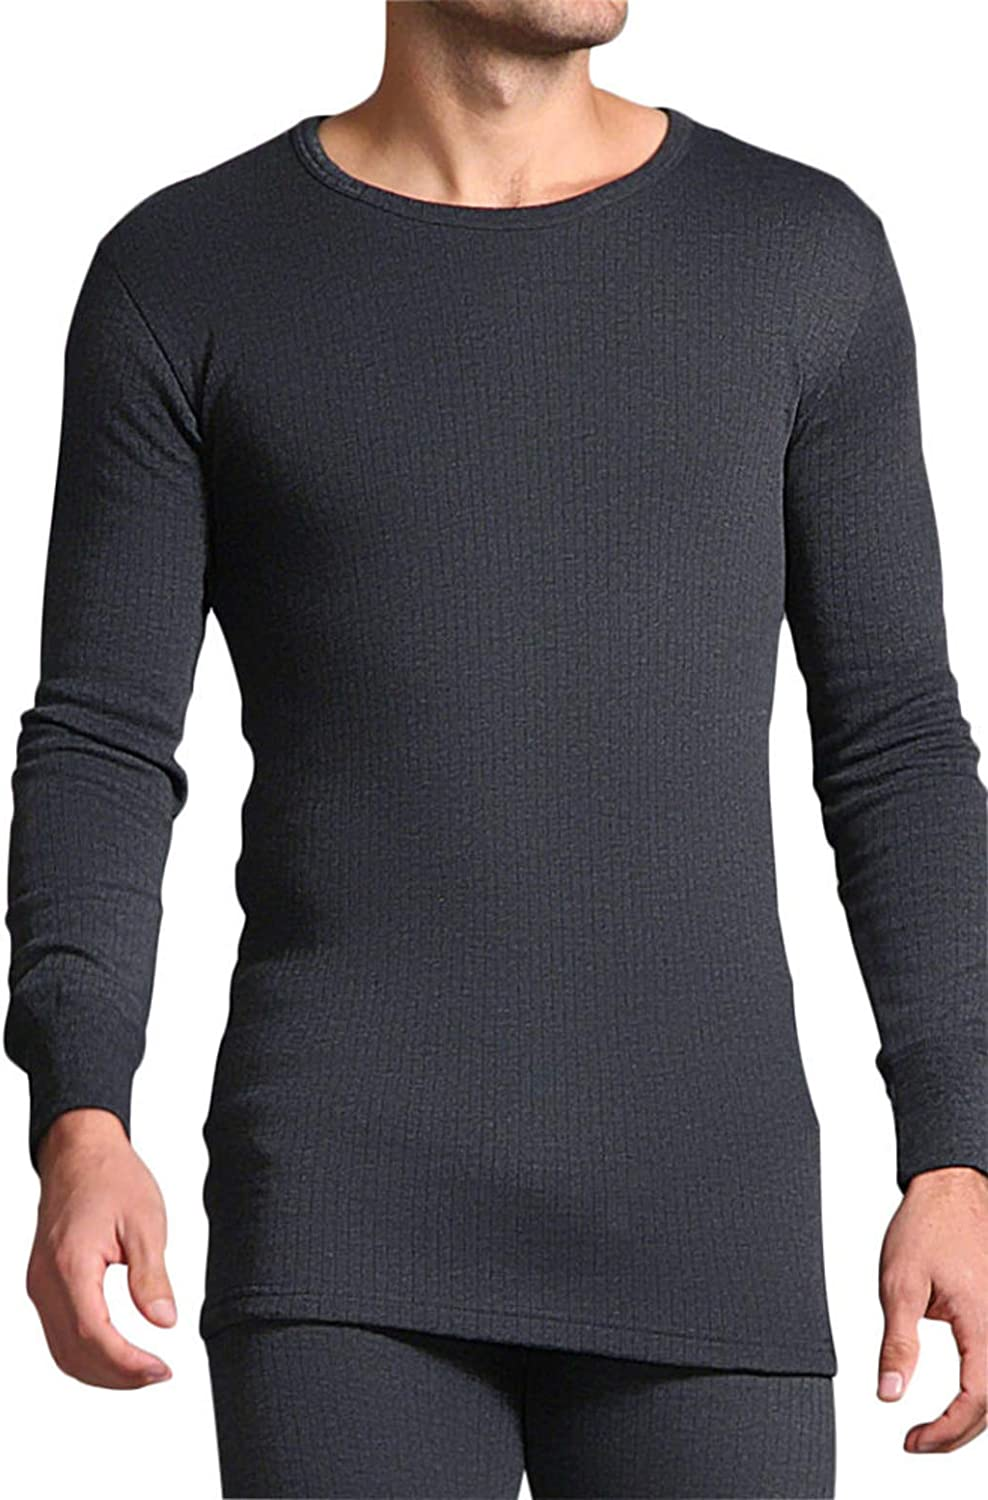 Big Sizes Thermal Tops up to 10X 3 Colors